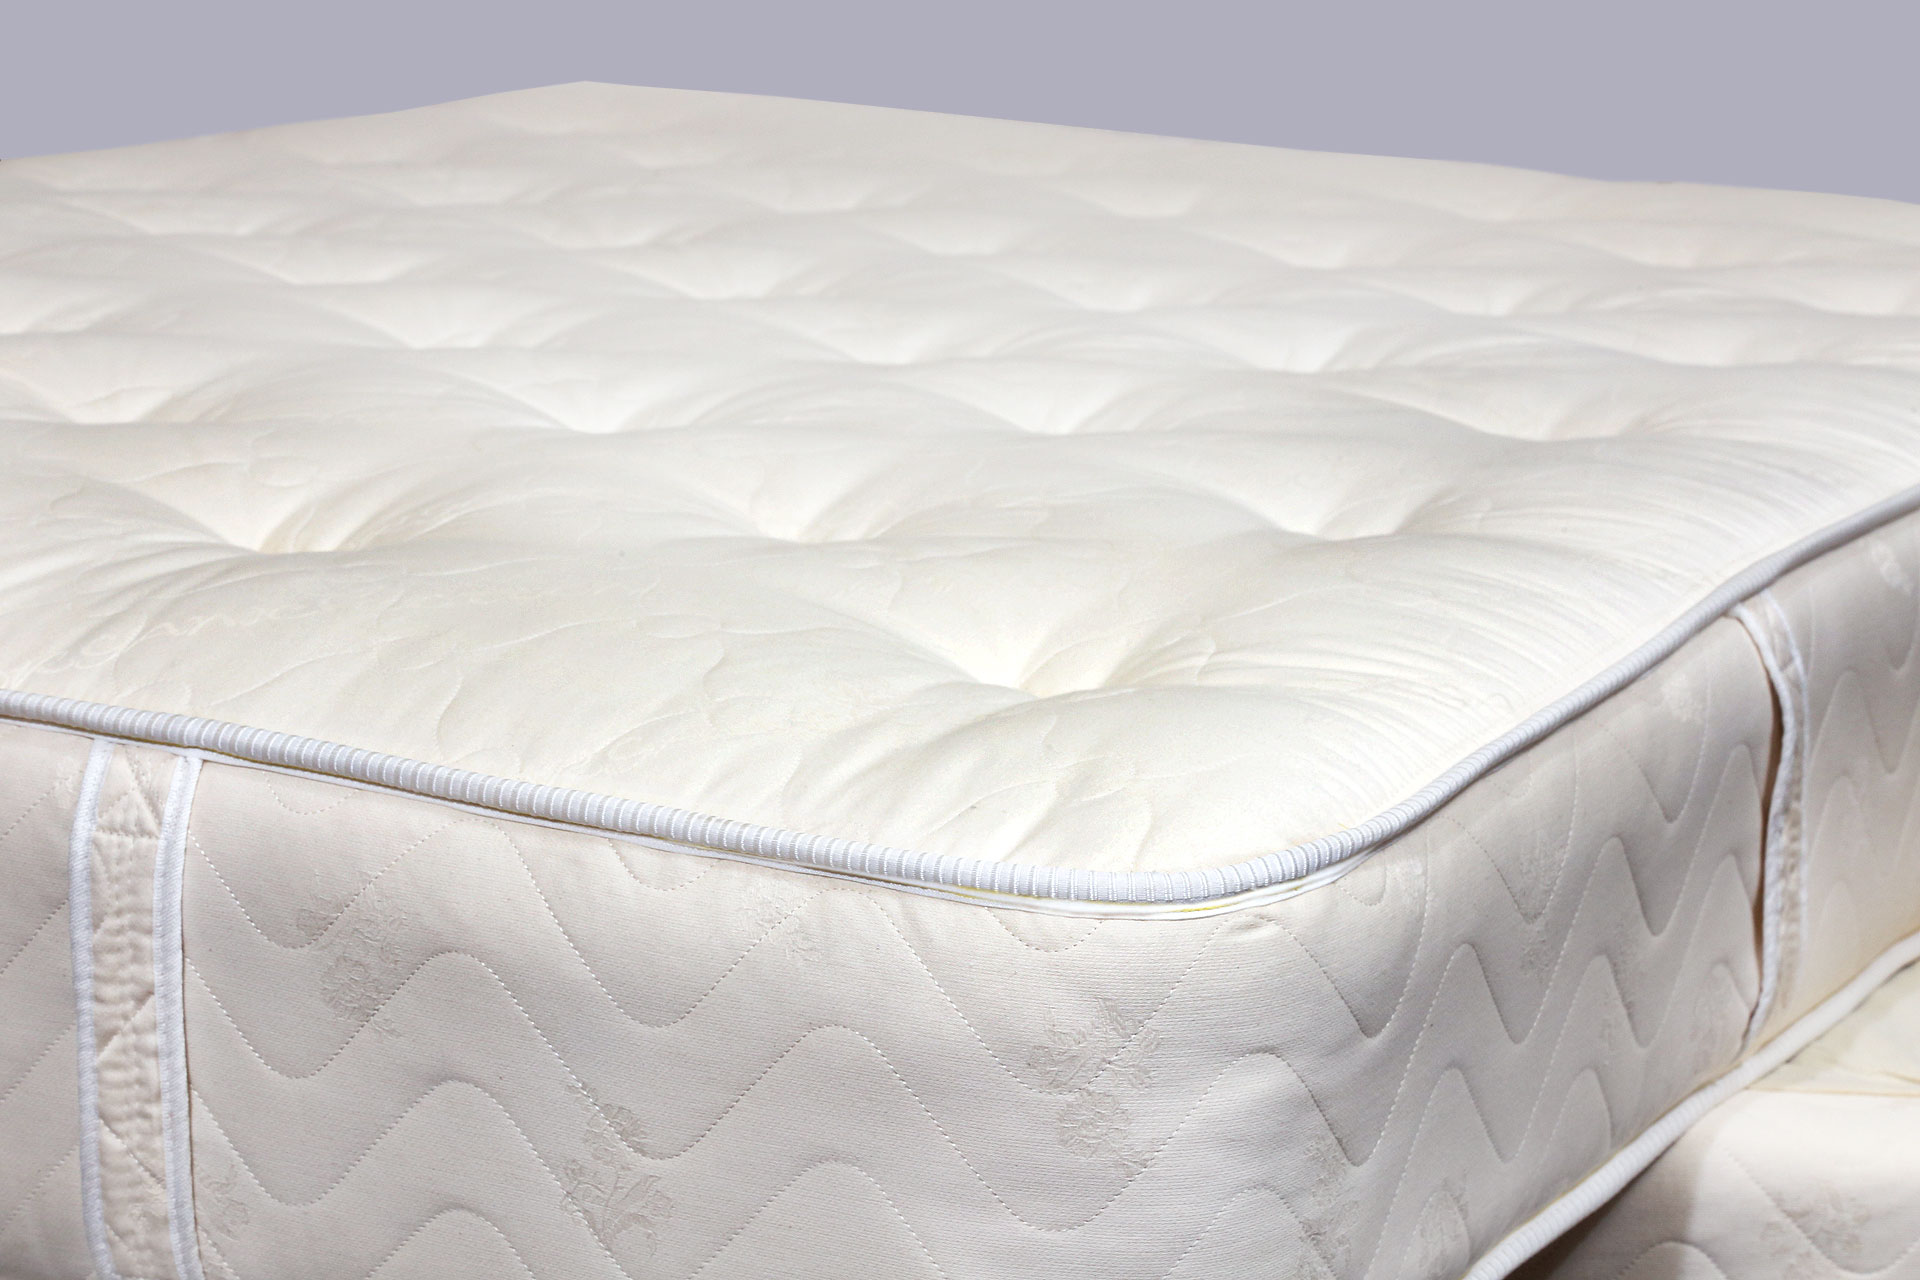 competitive now has prices mattresses inch the plus mattress futon lily com for organic most